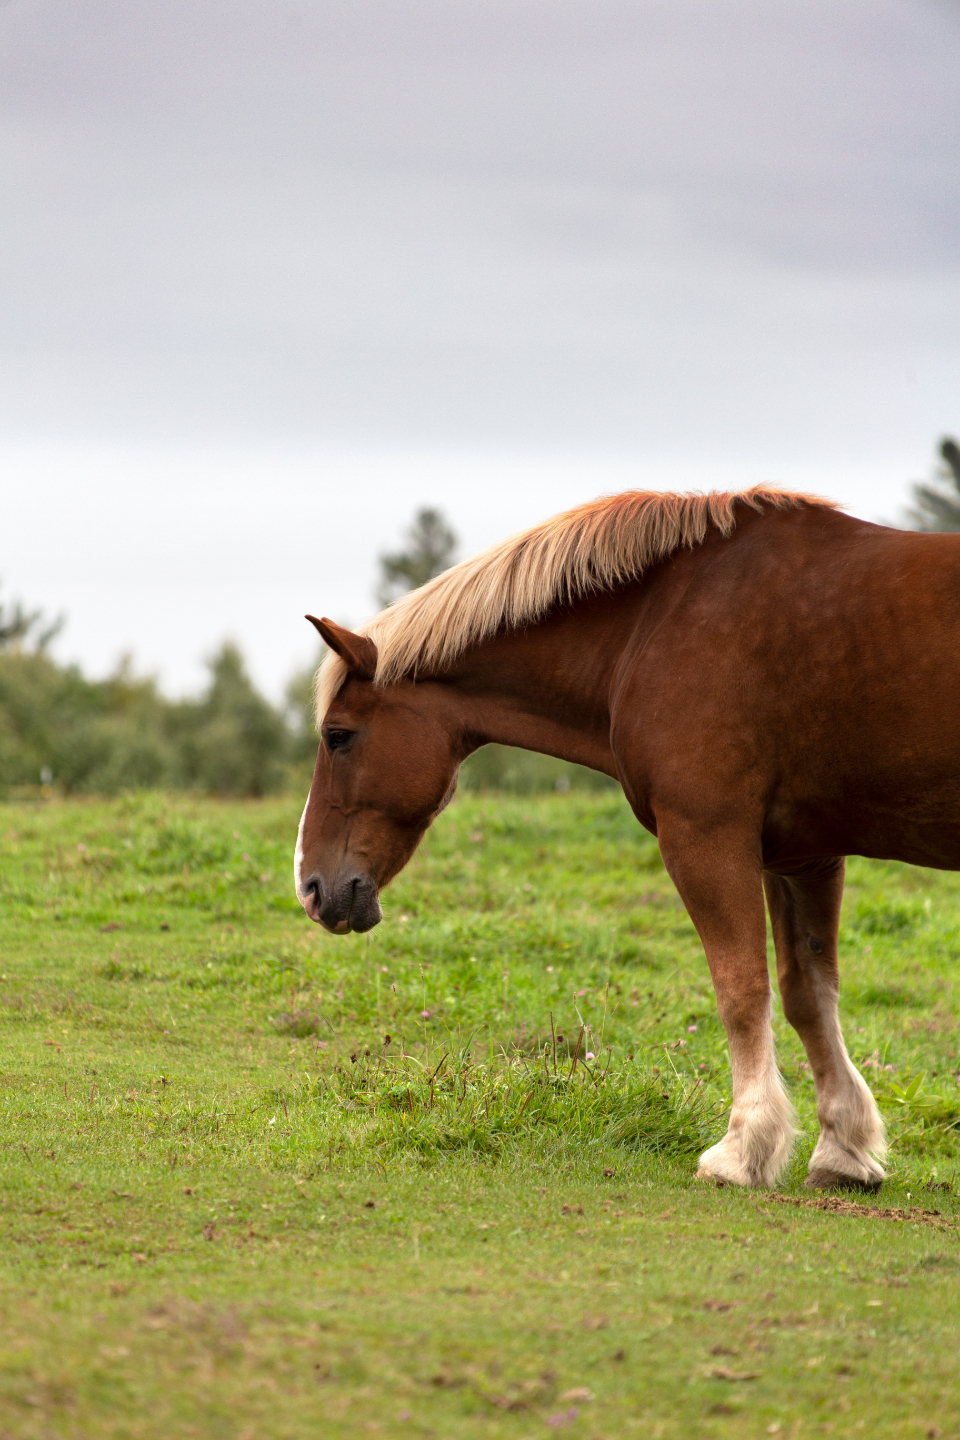 horse animal countryside equine farm field grass outdoors rural nature country pasture sky